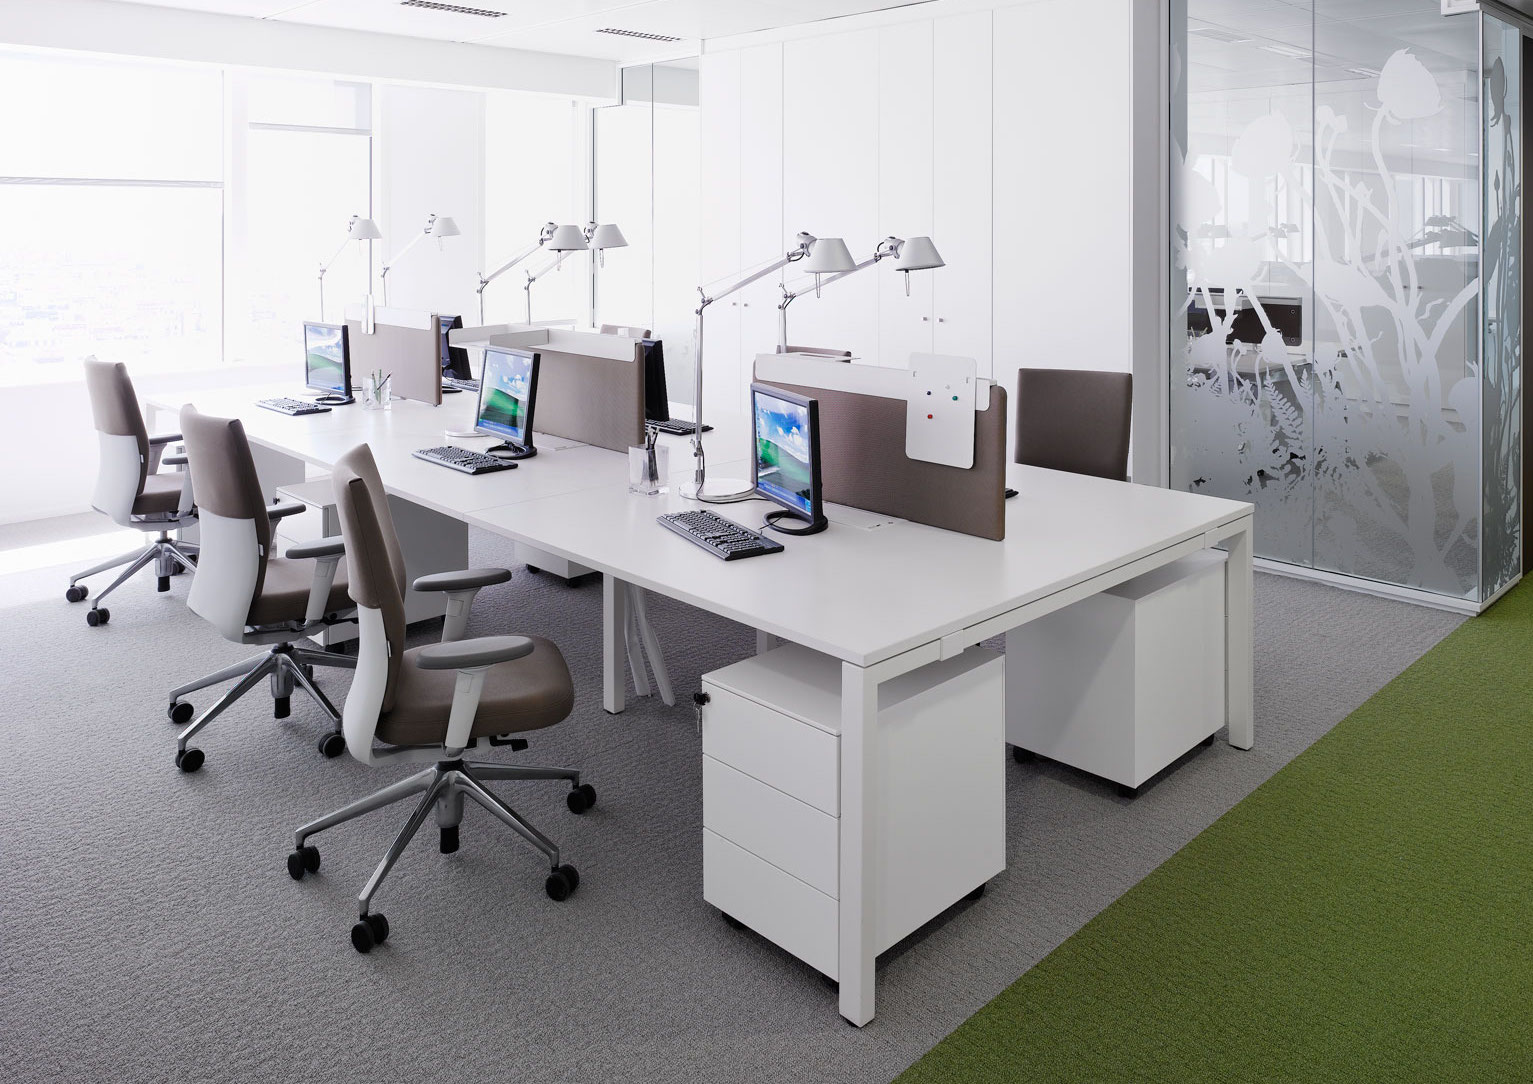 Id soft task chair vitra for Office design vitra